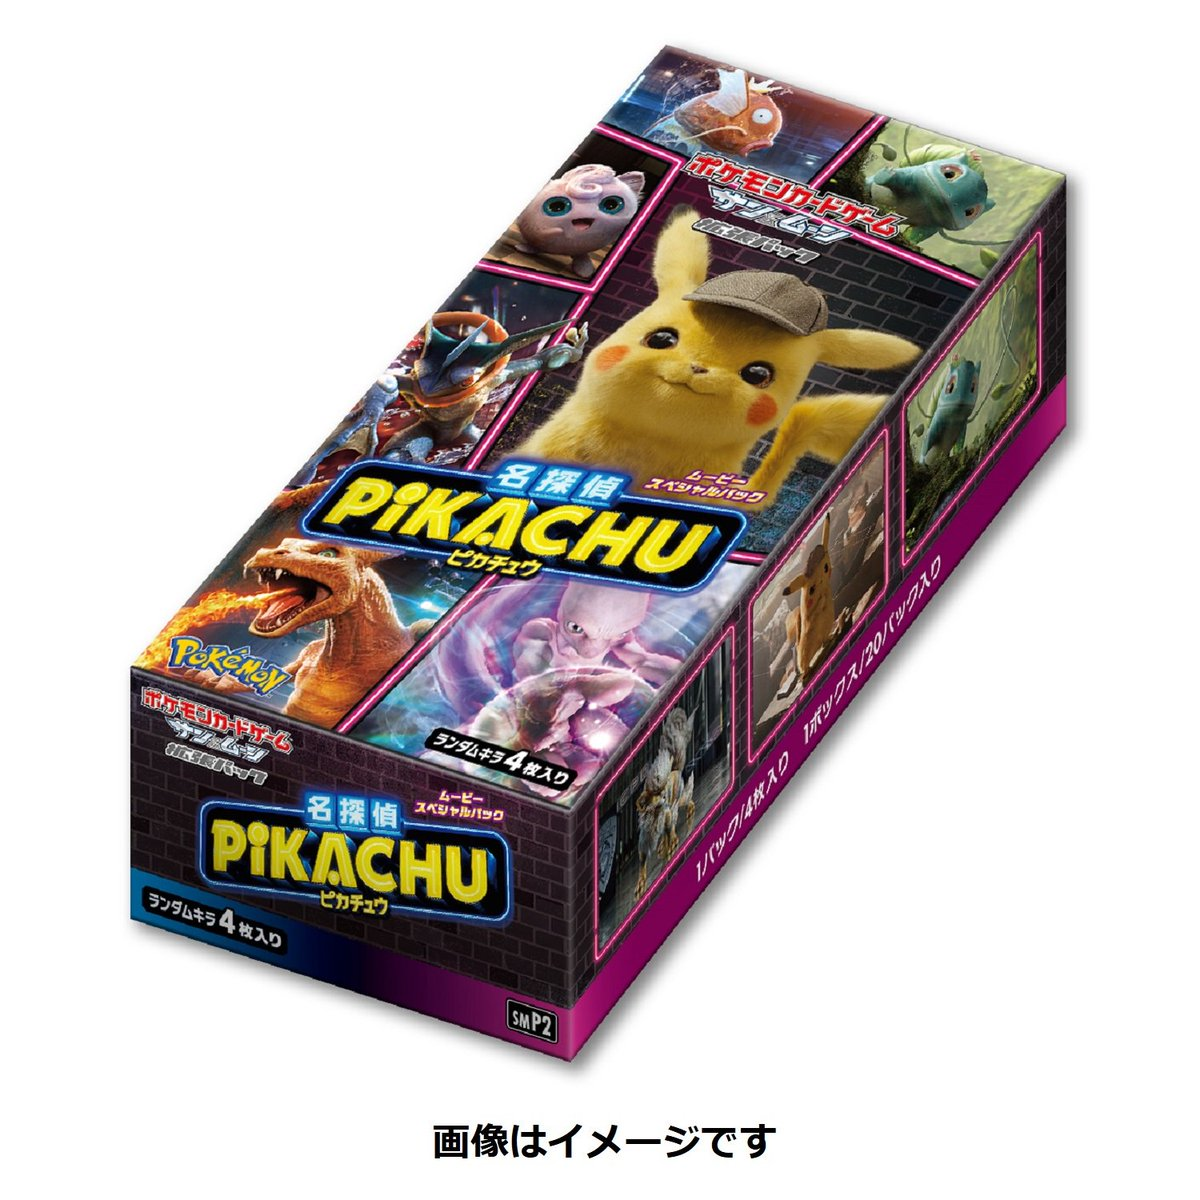 tweet-The booster box and pack images for Japan's 'Detective Pikachu' mini-set have been revealed, showing that their set will include our promo cards like Greninja-GX. Our entire English set was already revealed here: https://t.co/tNrTrK2tNl https://t.co/mI5ArVbGqI